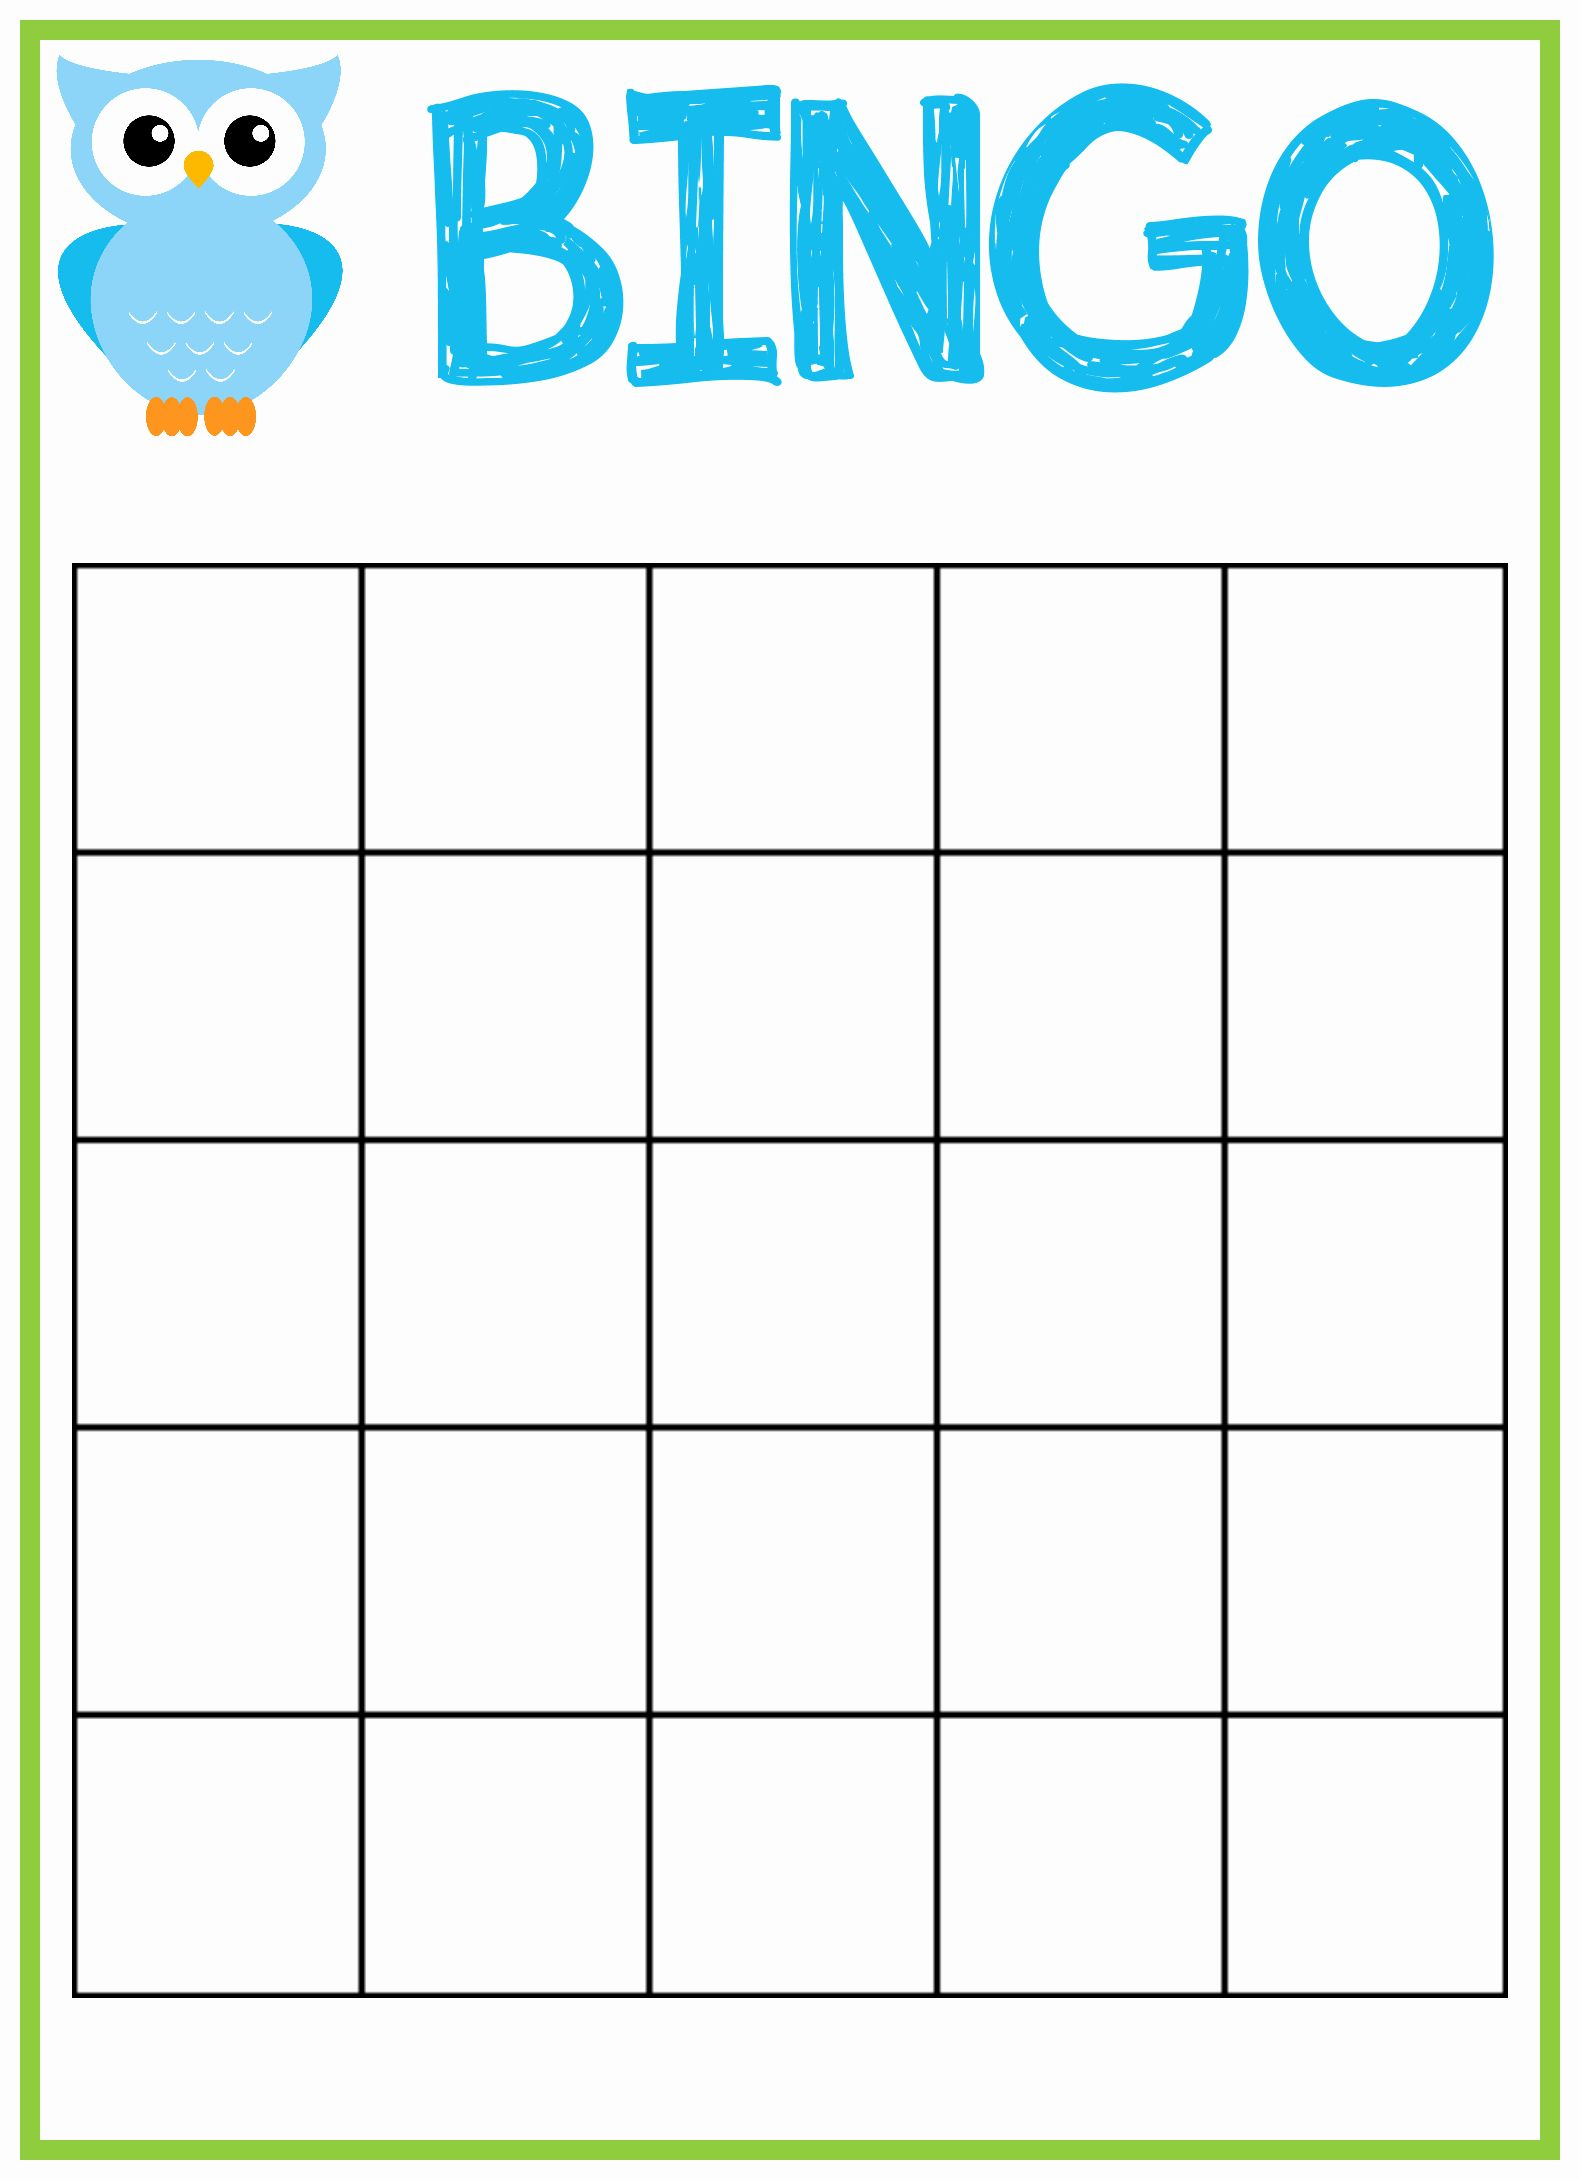 Free Printable Blank Bingo Cards For Baby Shower : printable, blank, bingo, cards, shower, Bingo, Template, Beautiful, Shower, Cards, Template,, Printable,